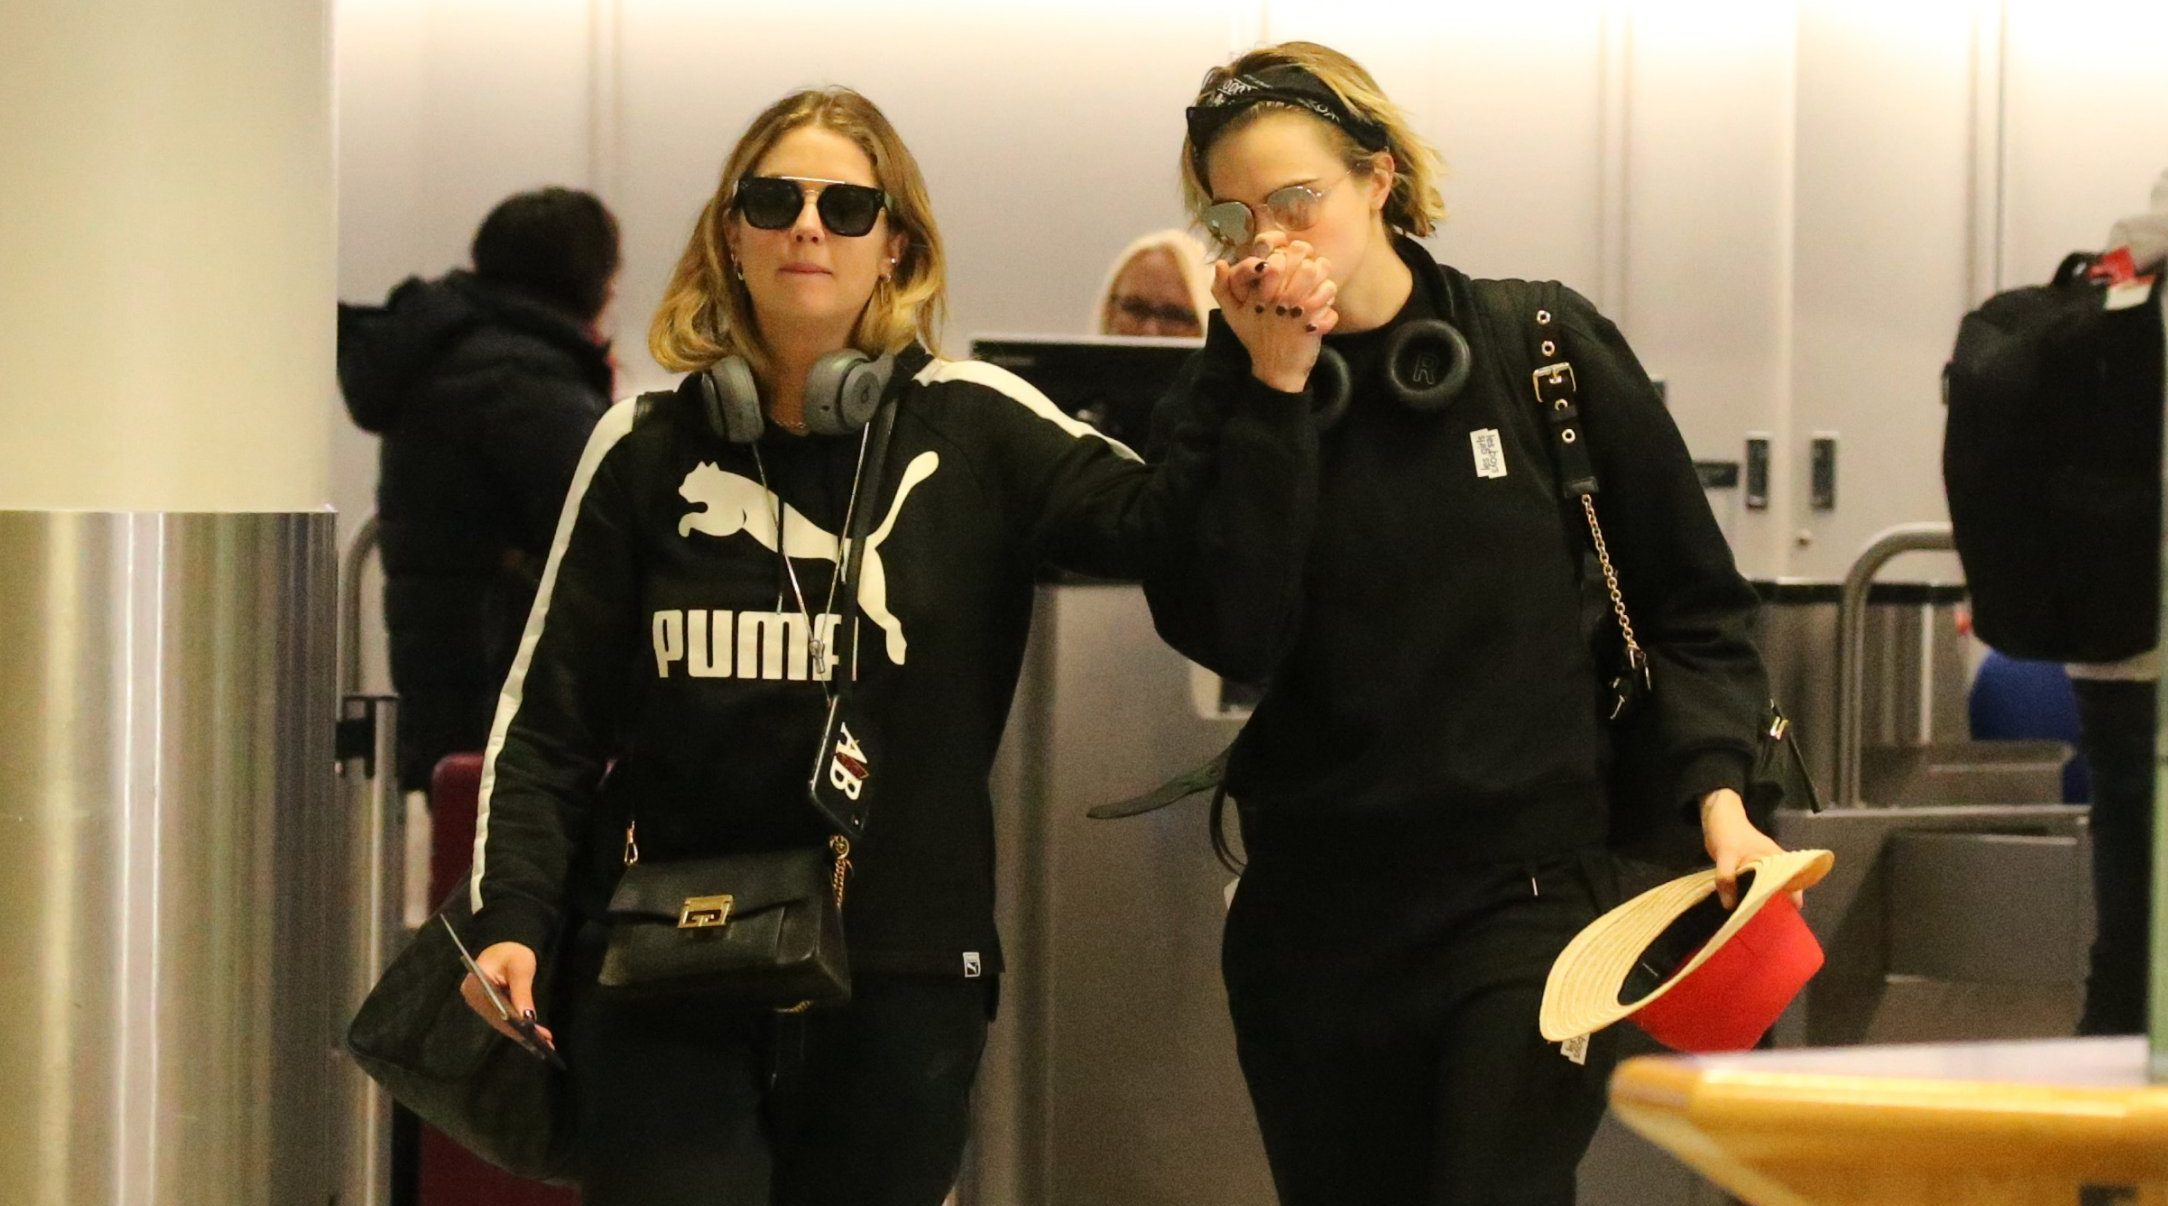 EXCLUSIVE: * Online Set Fee 250 GBP * * UK Print Min Set Fee 300 GBP - Double Fees Page 1 * Cara Delevingne and girlfriend Ashley Benson Seen Arriving At Gatwick Airport, as news was announced that all flights have been grounded yet again following further drone sightings. Cara & Ashley can be seen giving each other a high five, before reality sinks back in when their informed that they won't be boarding the plane anytime soon. It seems that Cara and Ashley have been forced to put their romantic Christmas getaway on hold for now. Pictured: Cara Delevingne,Ashley Benson Ref: SPL5051280 211218 EXCLUSIVE Picture by: SplashNews.com * Online Set Fee 250 GBP * * UK Print Min Set Fee 300 GBP - Double Fees Page 1 Splash News and Pictures Los Angeles: 310-821-2666 New York: 212-619-2666 London: 0207 644 7656 Milan: 02 4399 8577 photodesk@splashnews.com World Rights